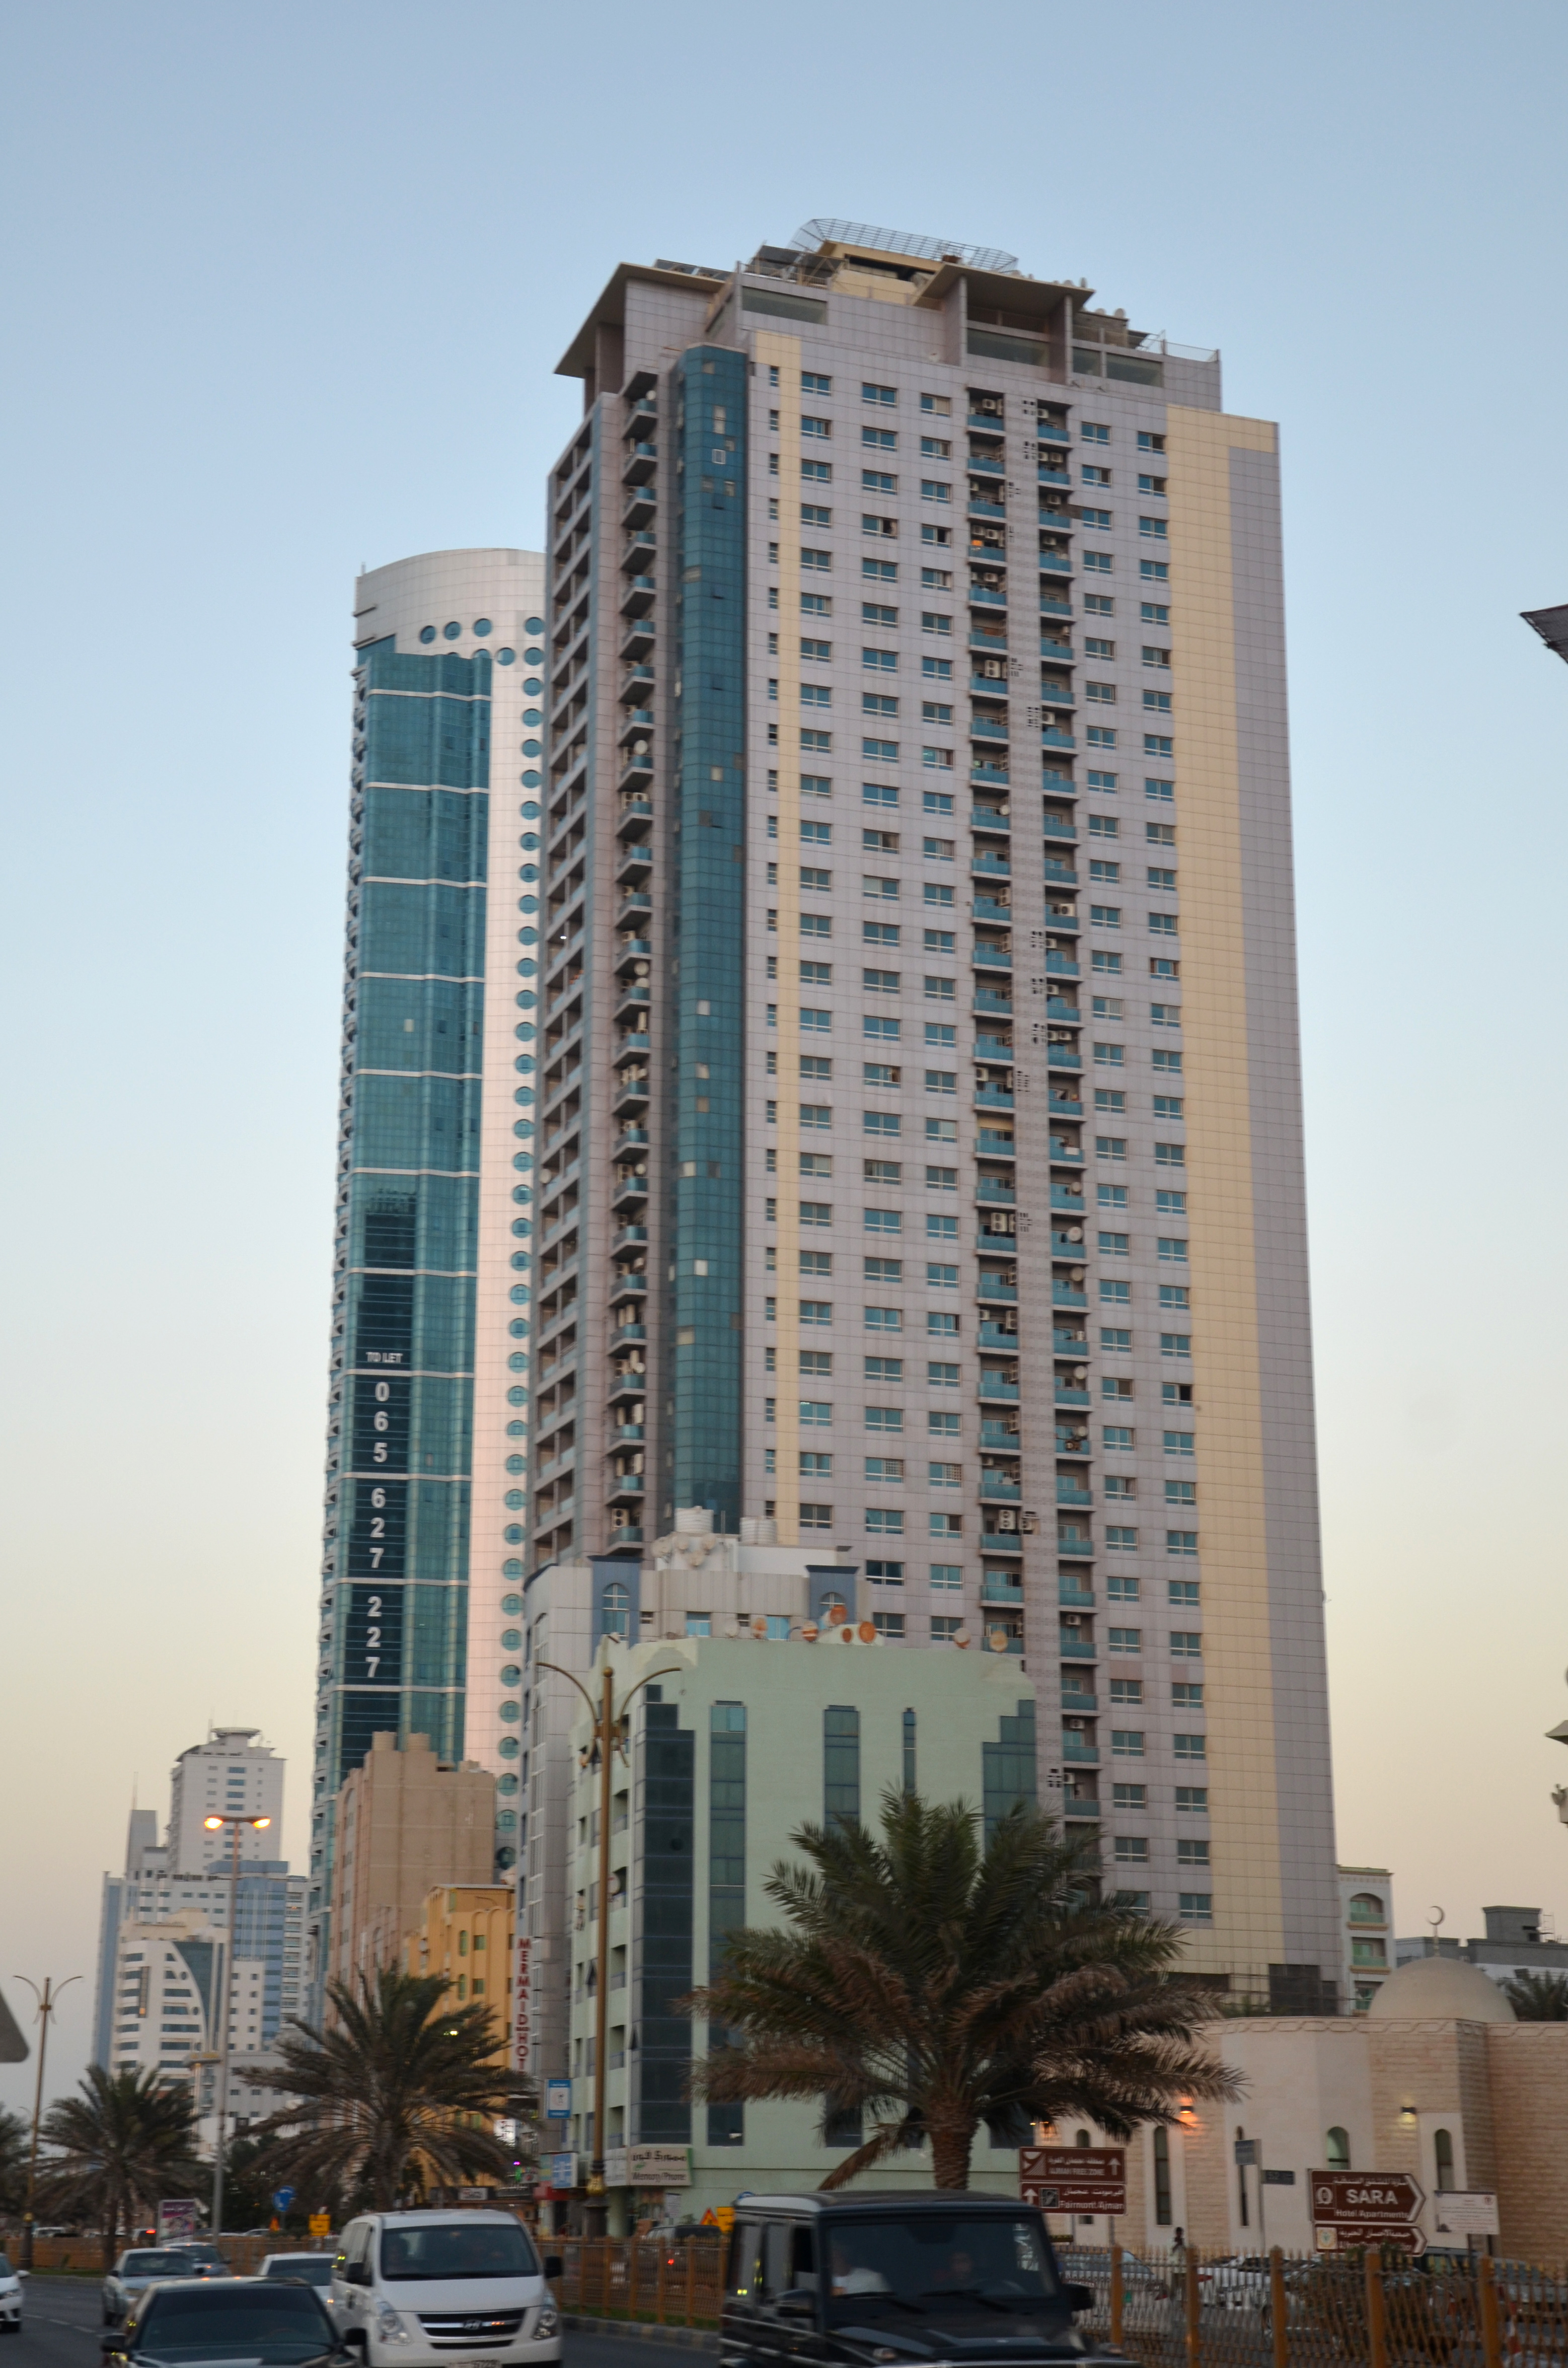 2 Bedroom Apartment for Rent in Al Shaali Tower 61f6af0505